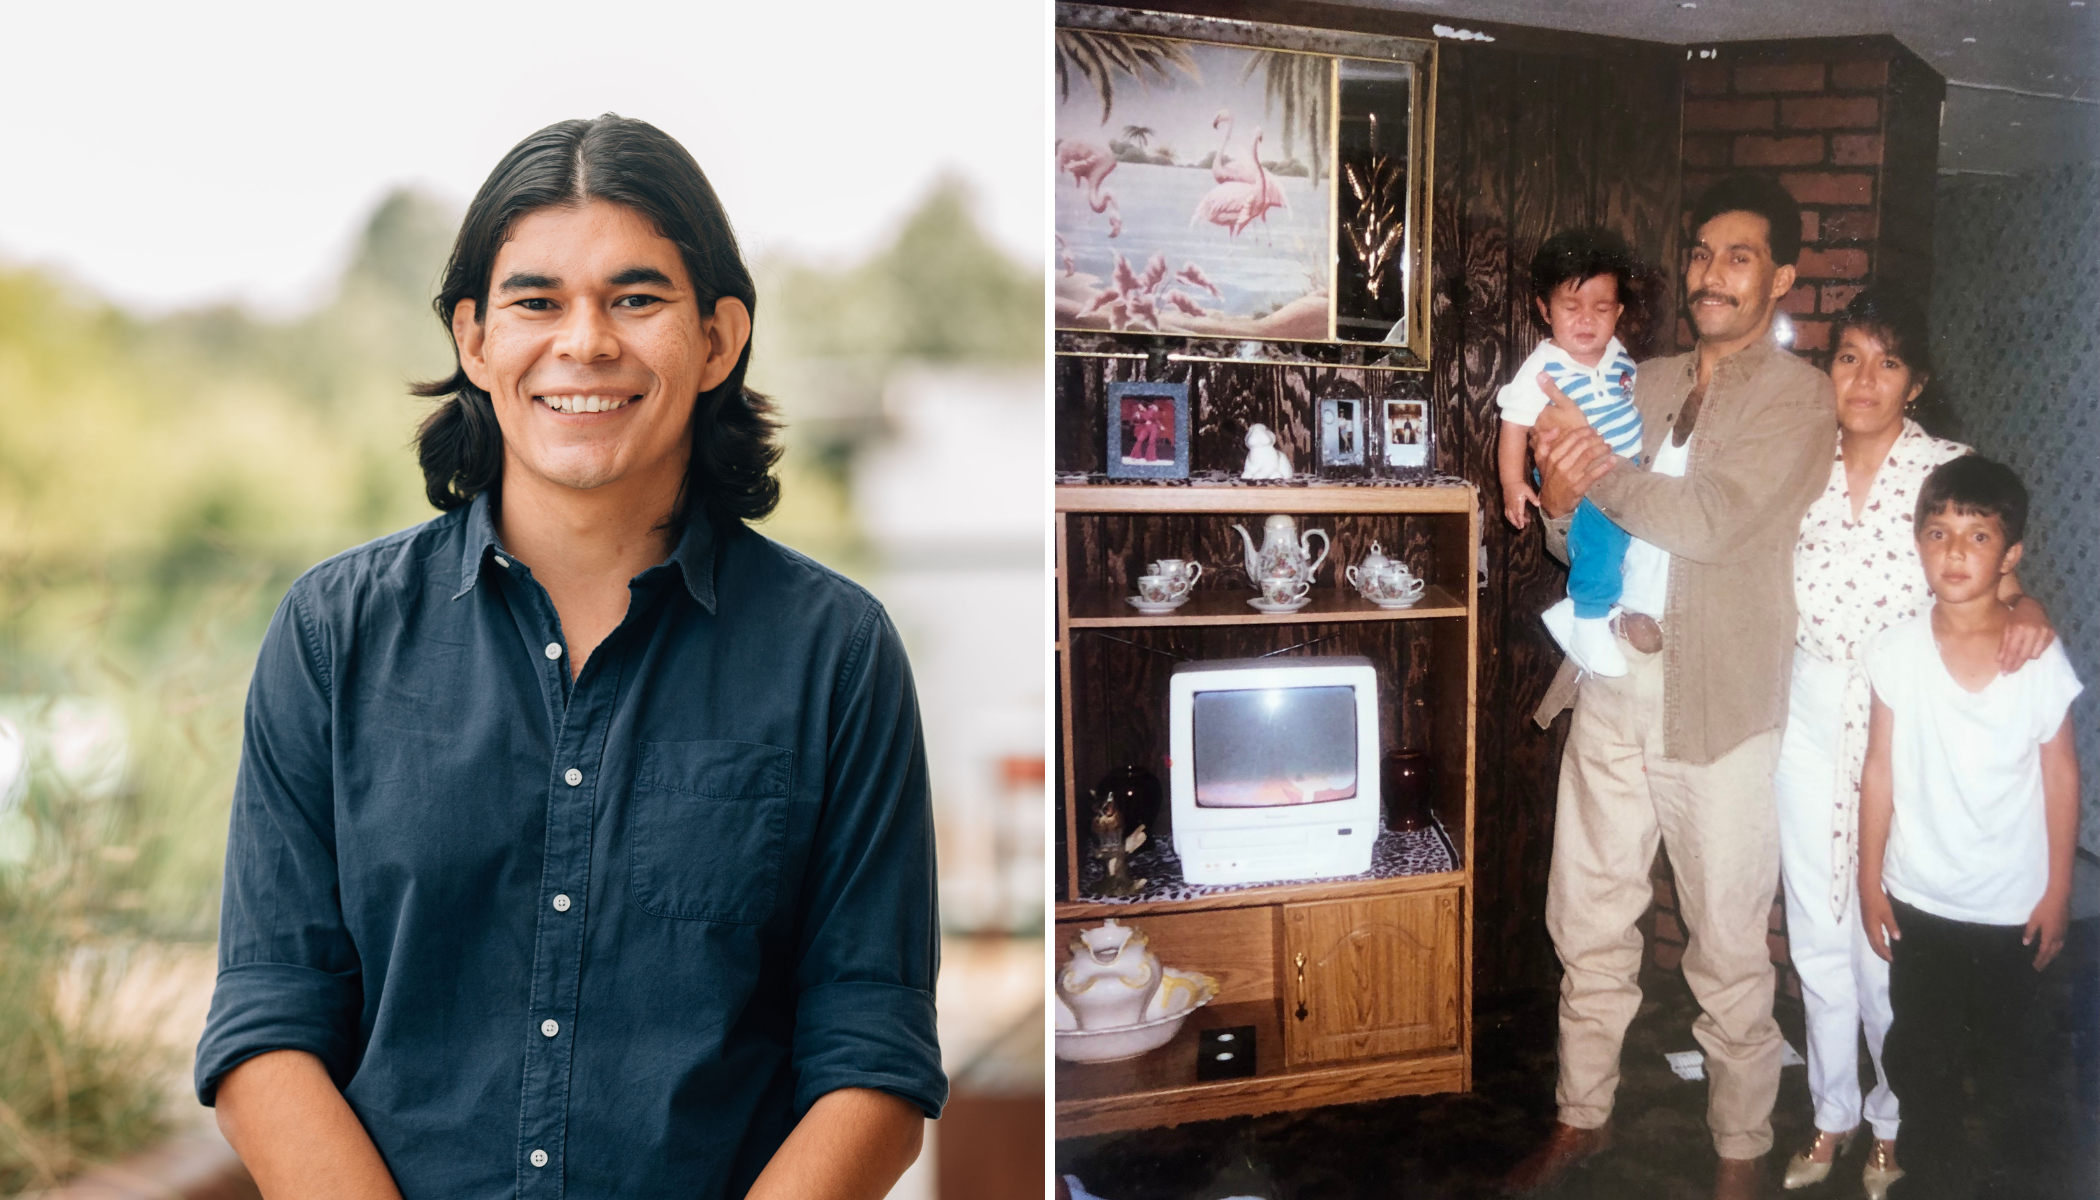 A man wears a blue shirt next to an image of a family of four in their home.